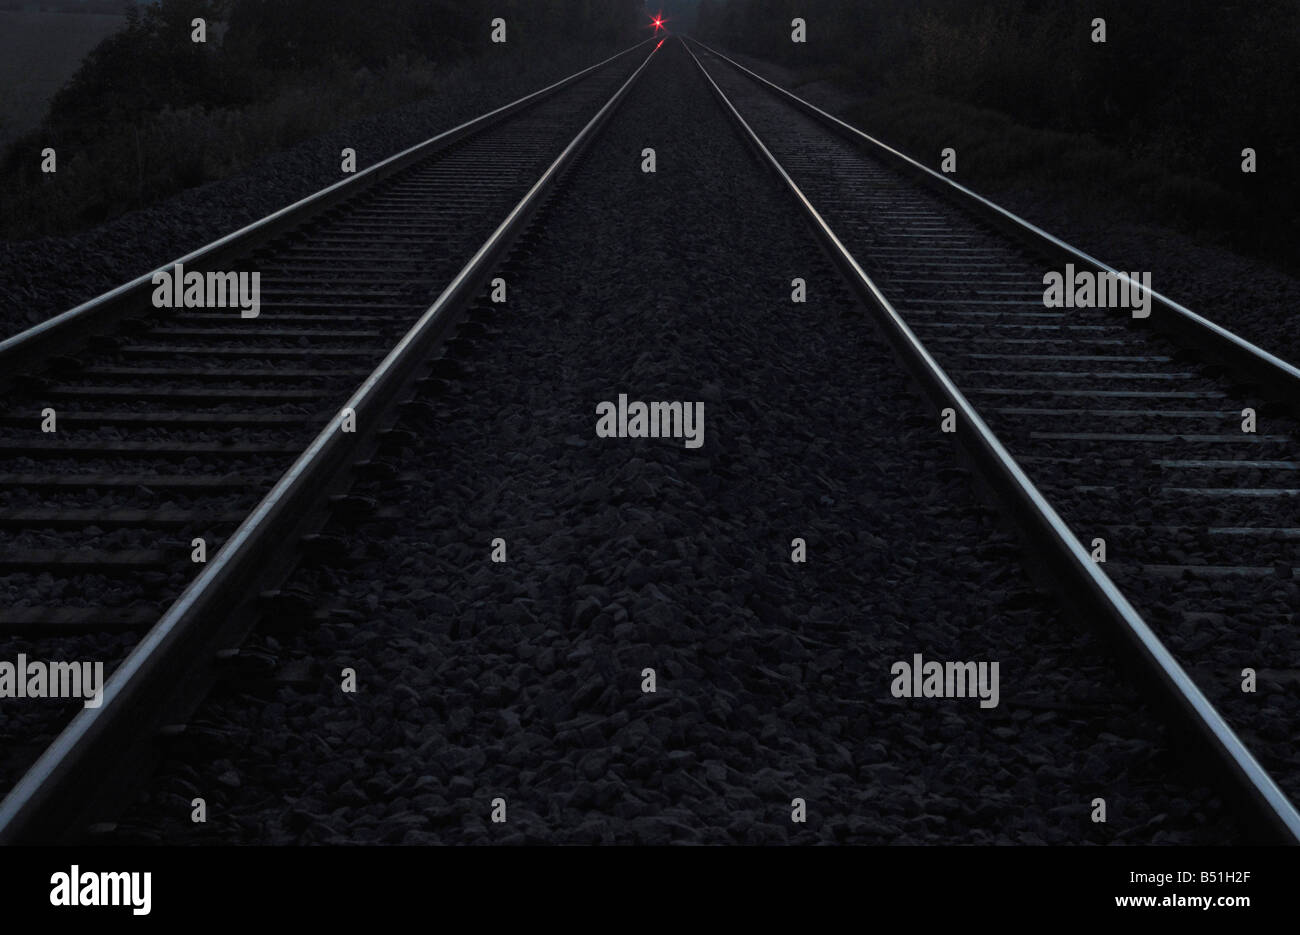 Bedford to Bletchley railway line at night - Stock Image